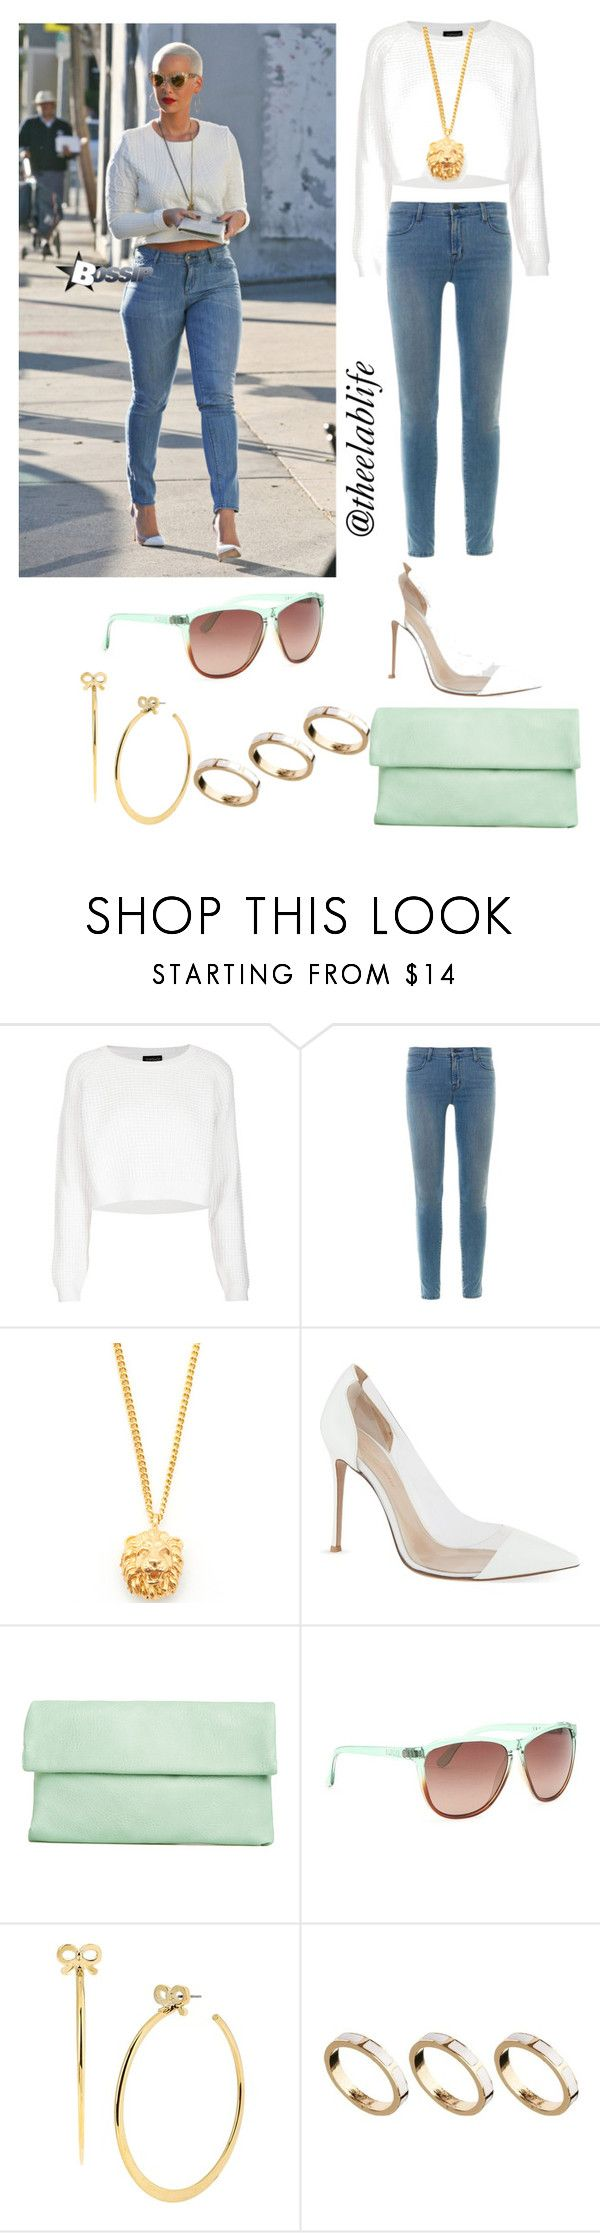 Mint by theelablife on Polyvore featuring Topshop, J Brand, Gianvito Rossi, ASOS, Bill Skinner, Betsey Johnson and Electric